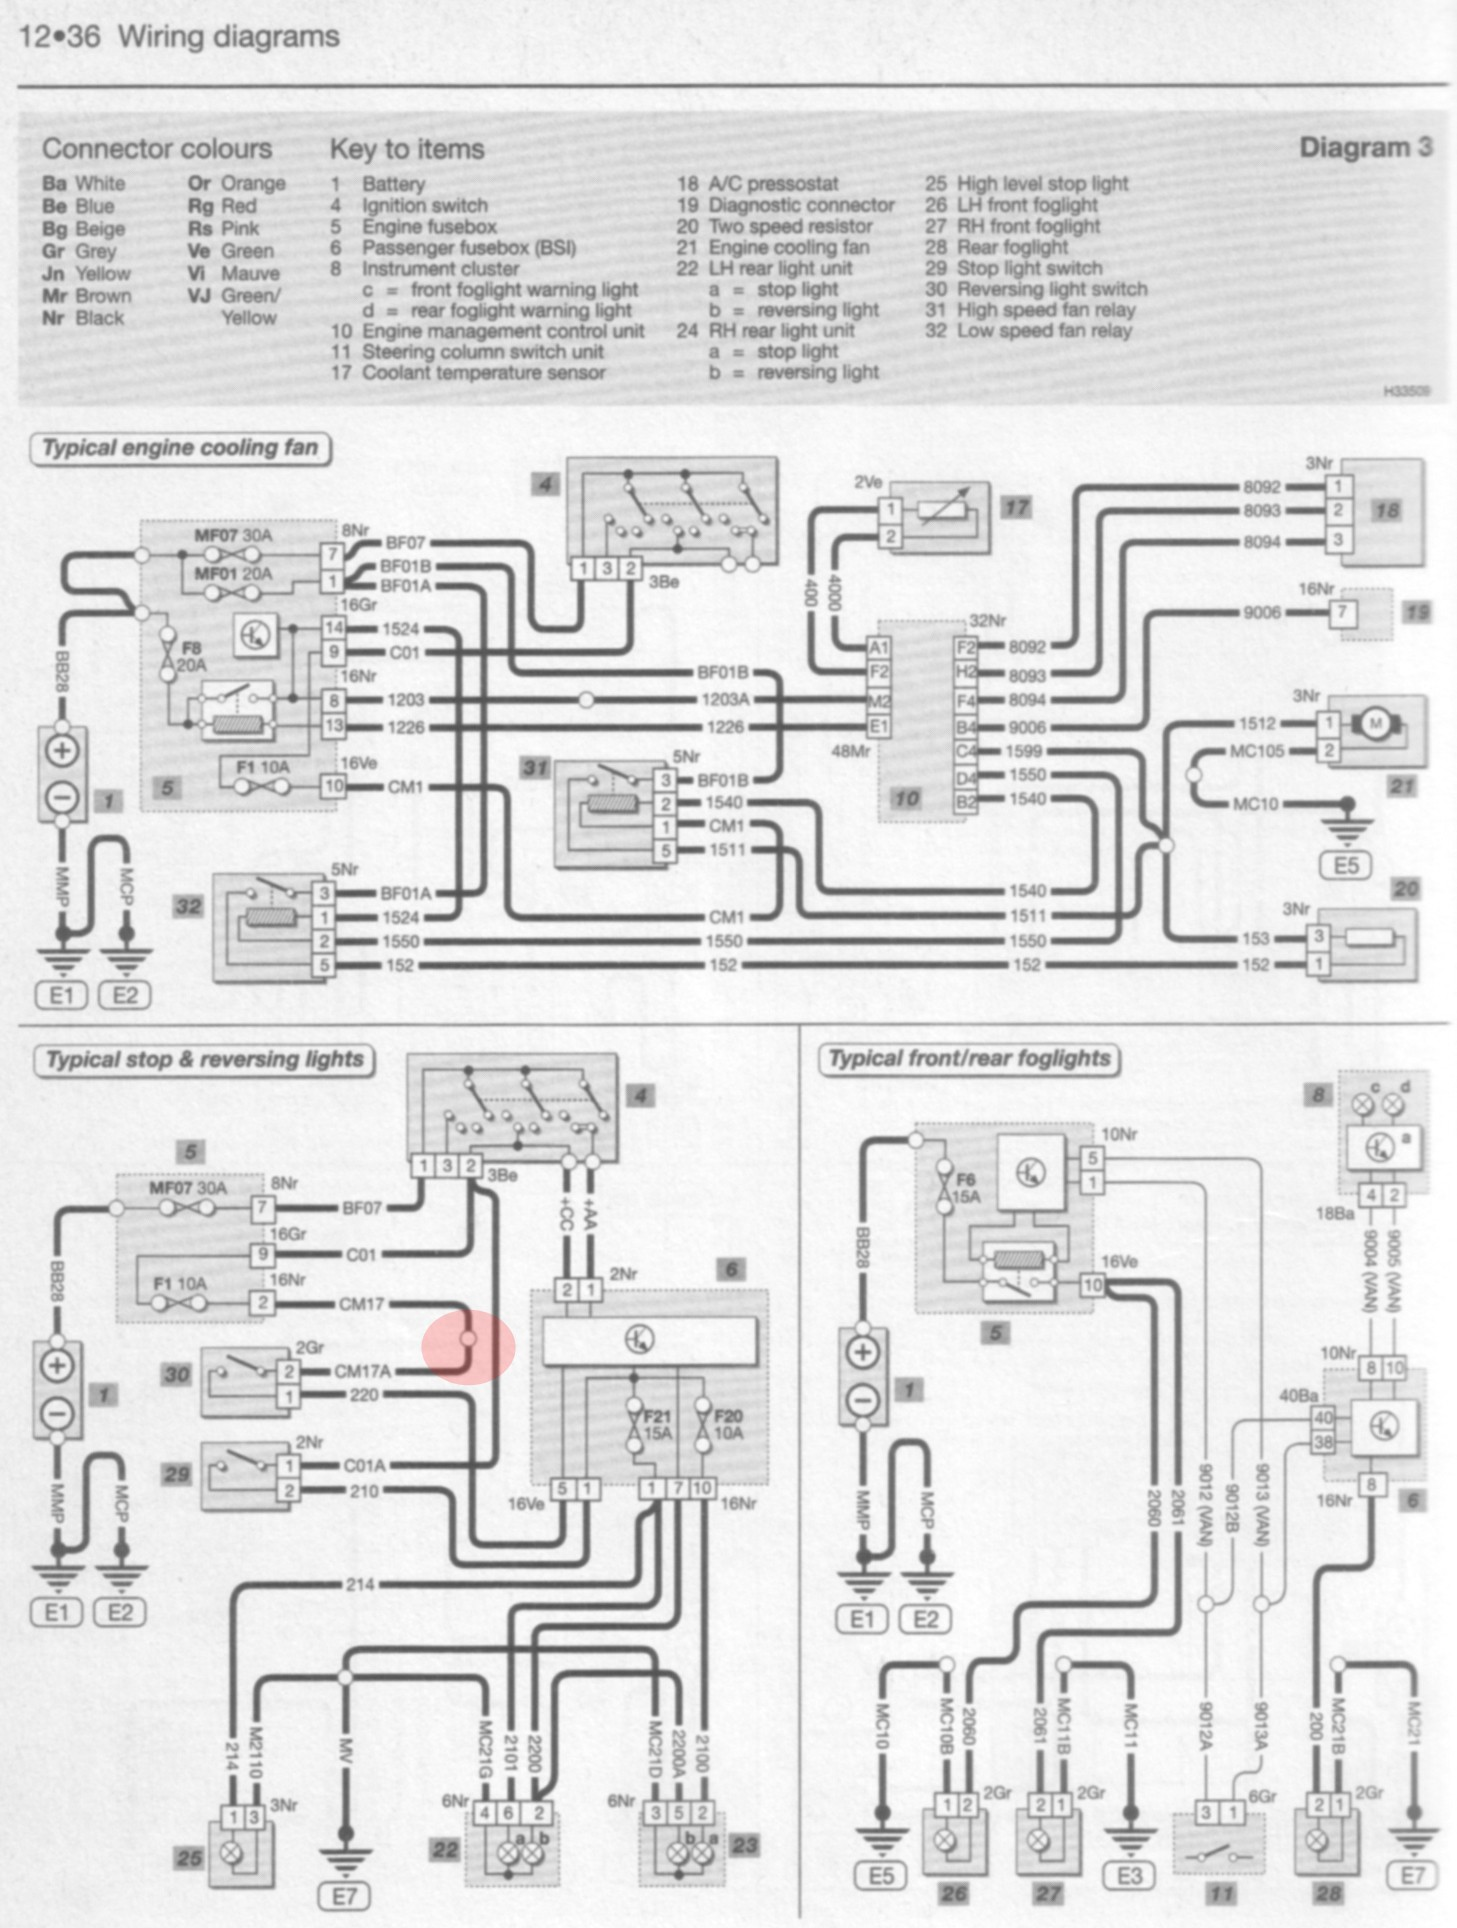 Peugeot 206 Engine Diagram Wiring Diagrams Mesmerizing Afif Gti Reverse Lights Not Working Of